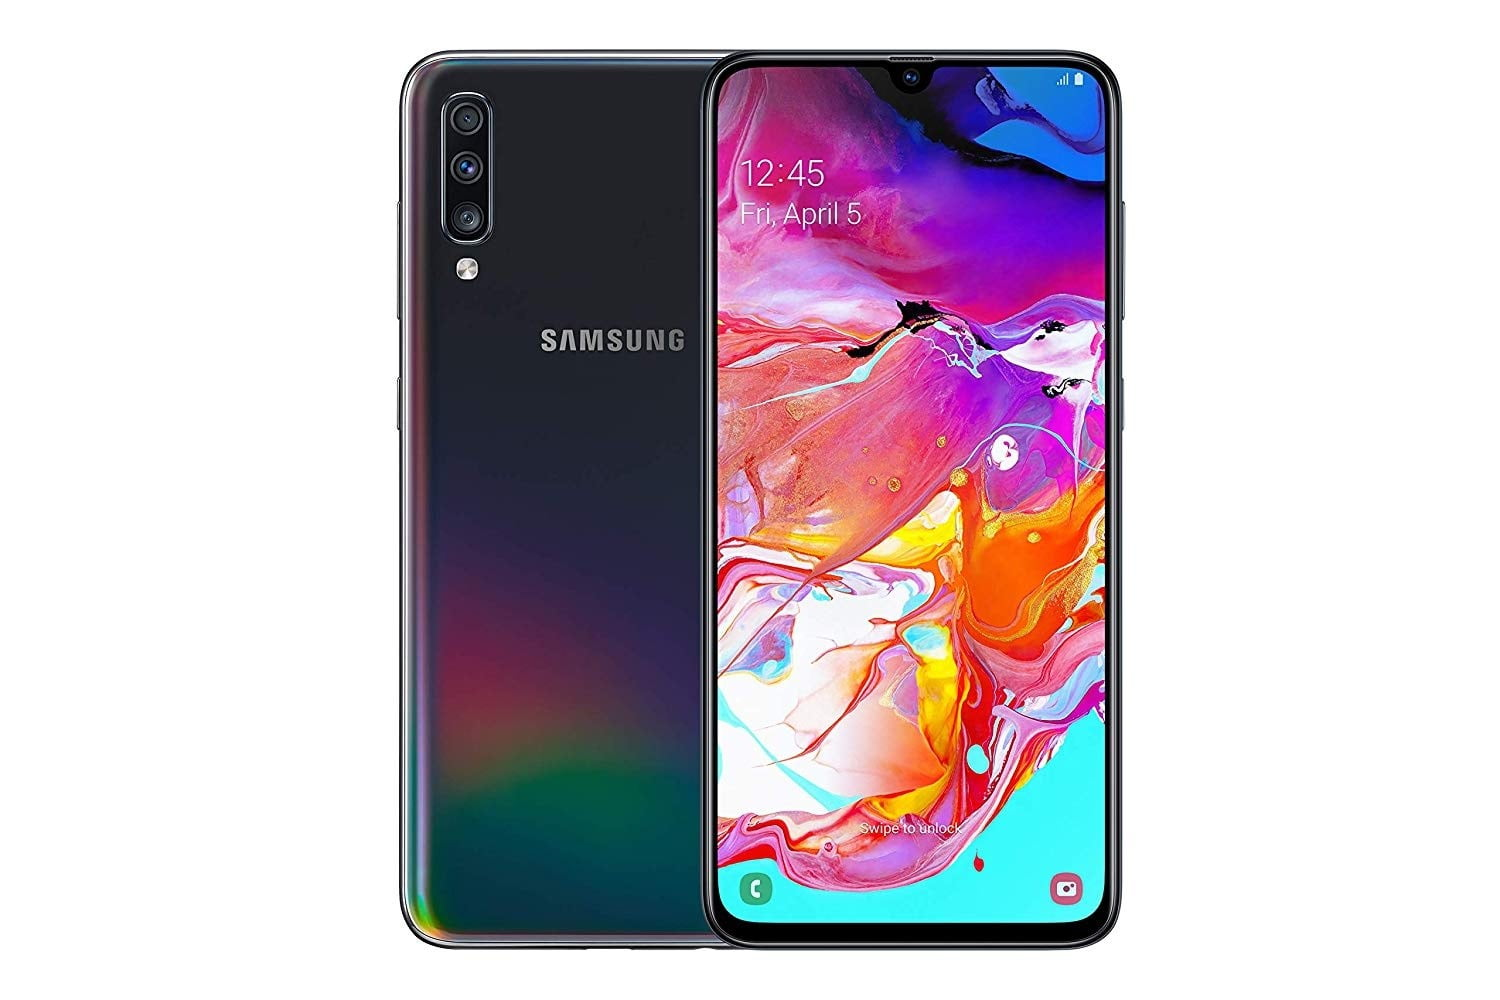 Amazon drops awesome deals on Samsung Galaxy A70 and A9 smartphones